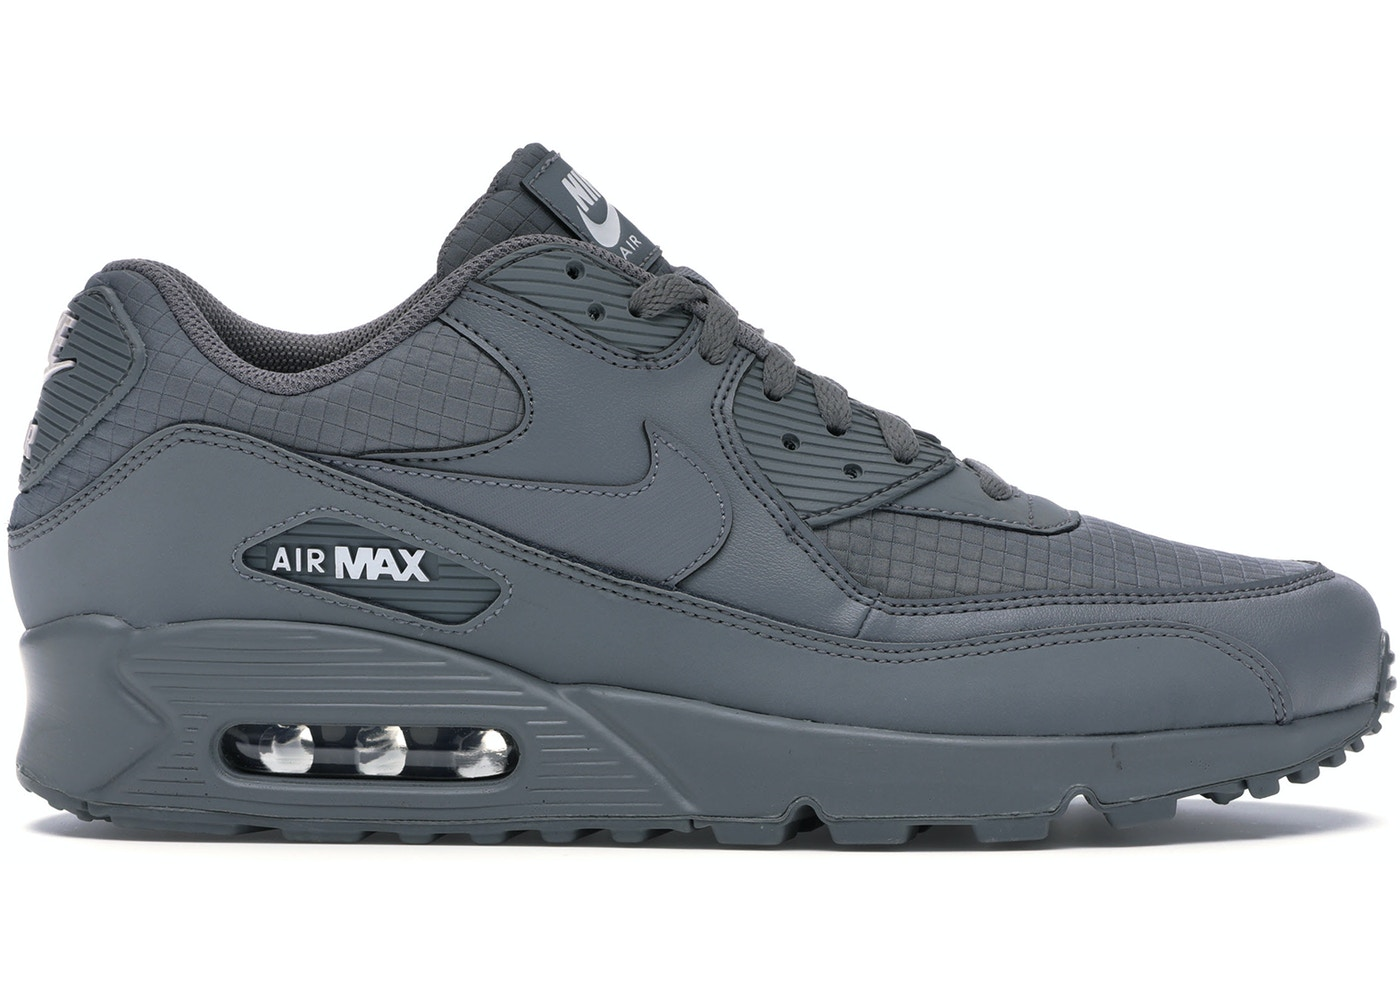 new arrival d8f64 aa58b Air Max 90 Triple Grey - AJ1285-017